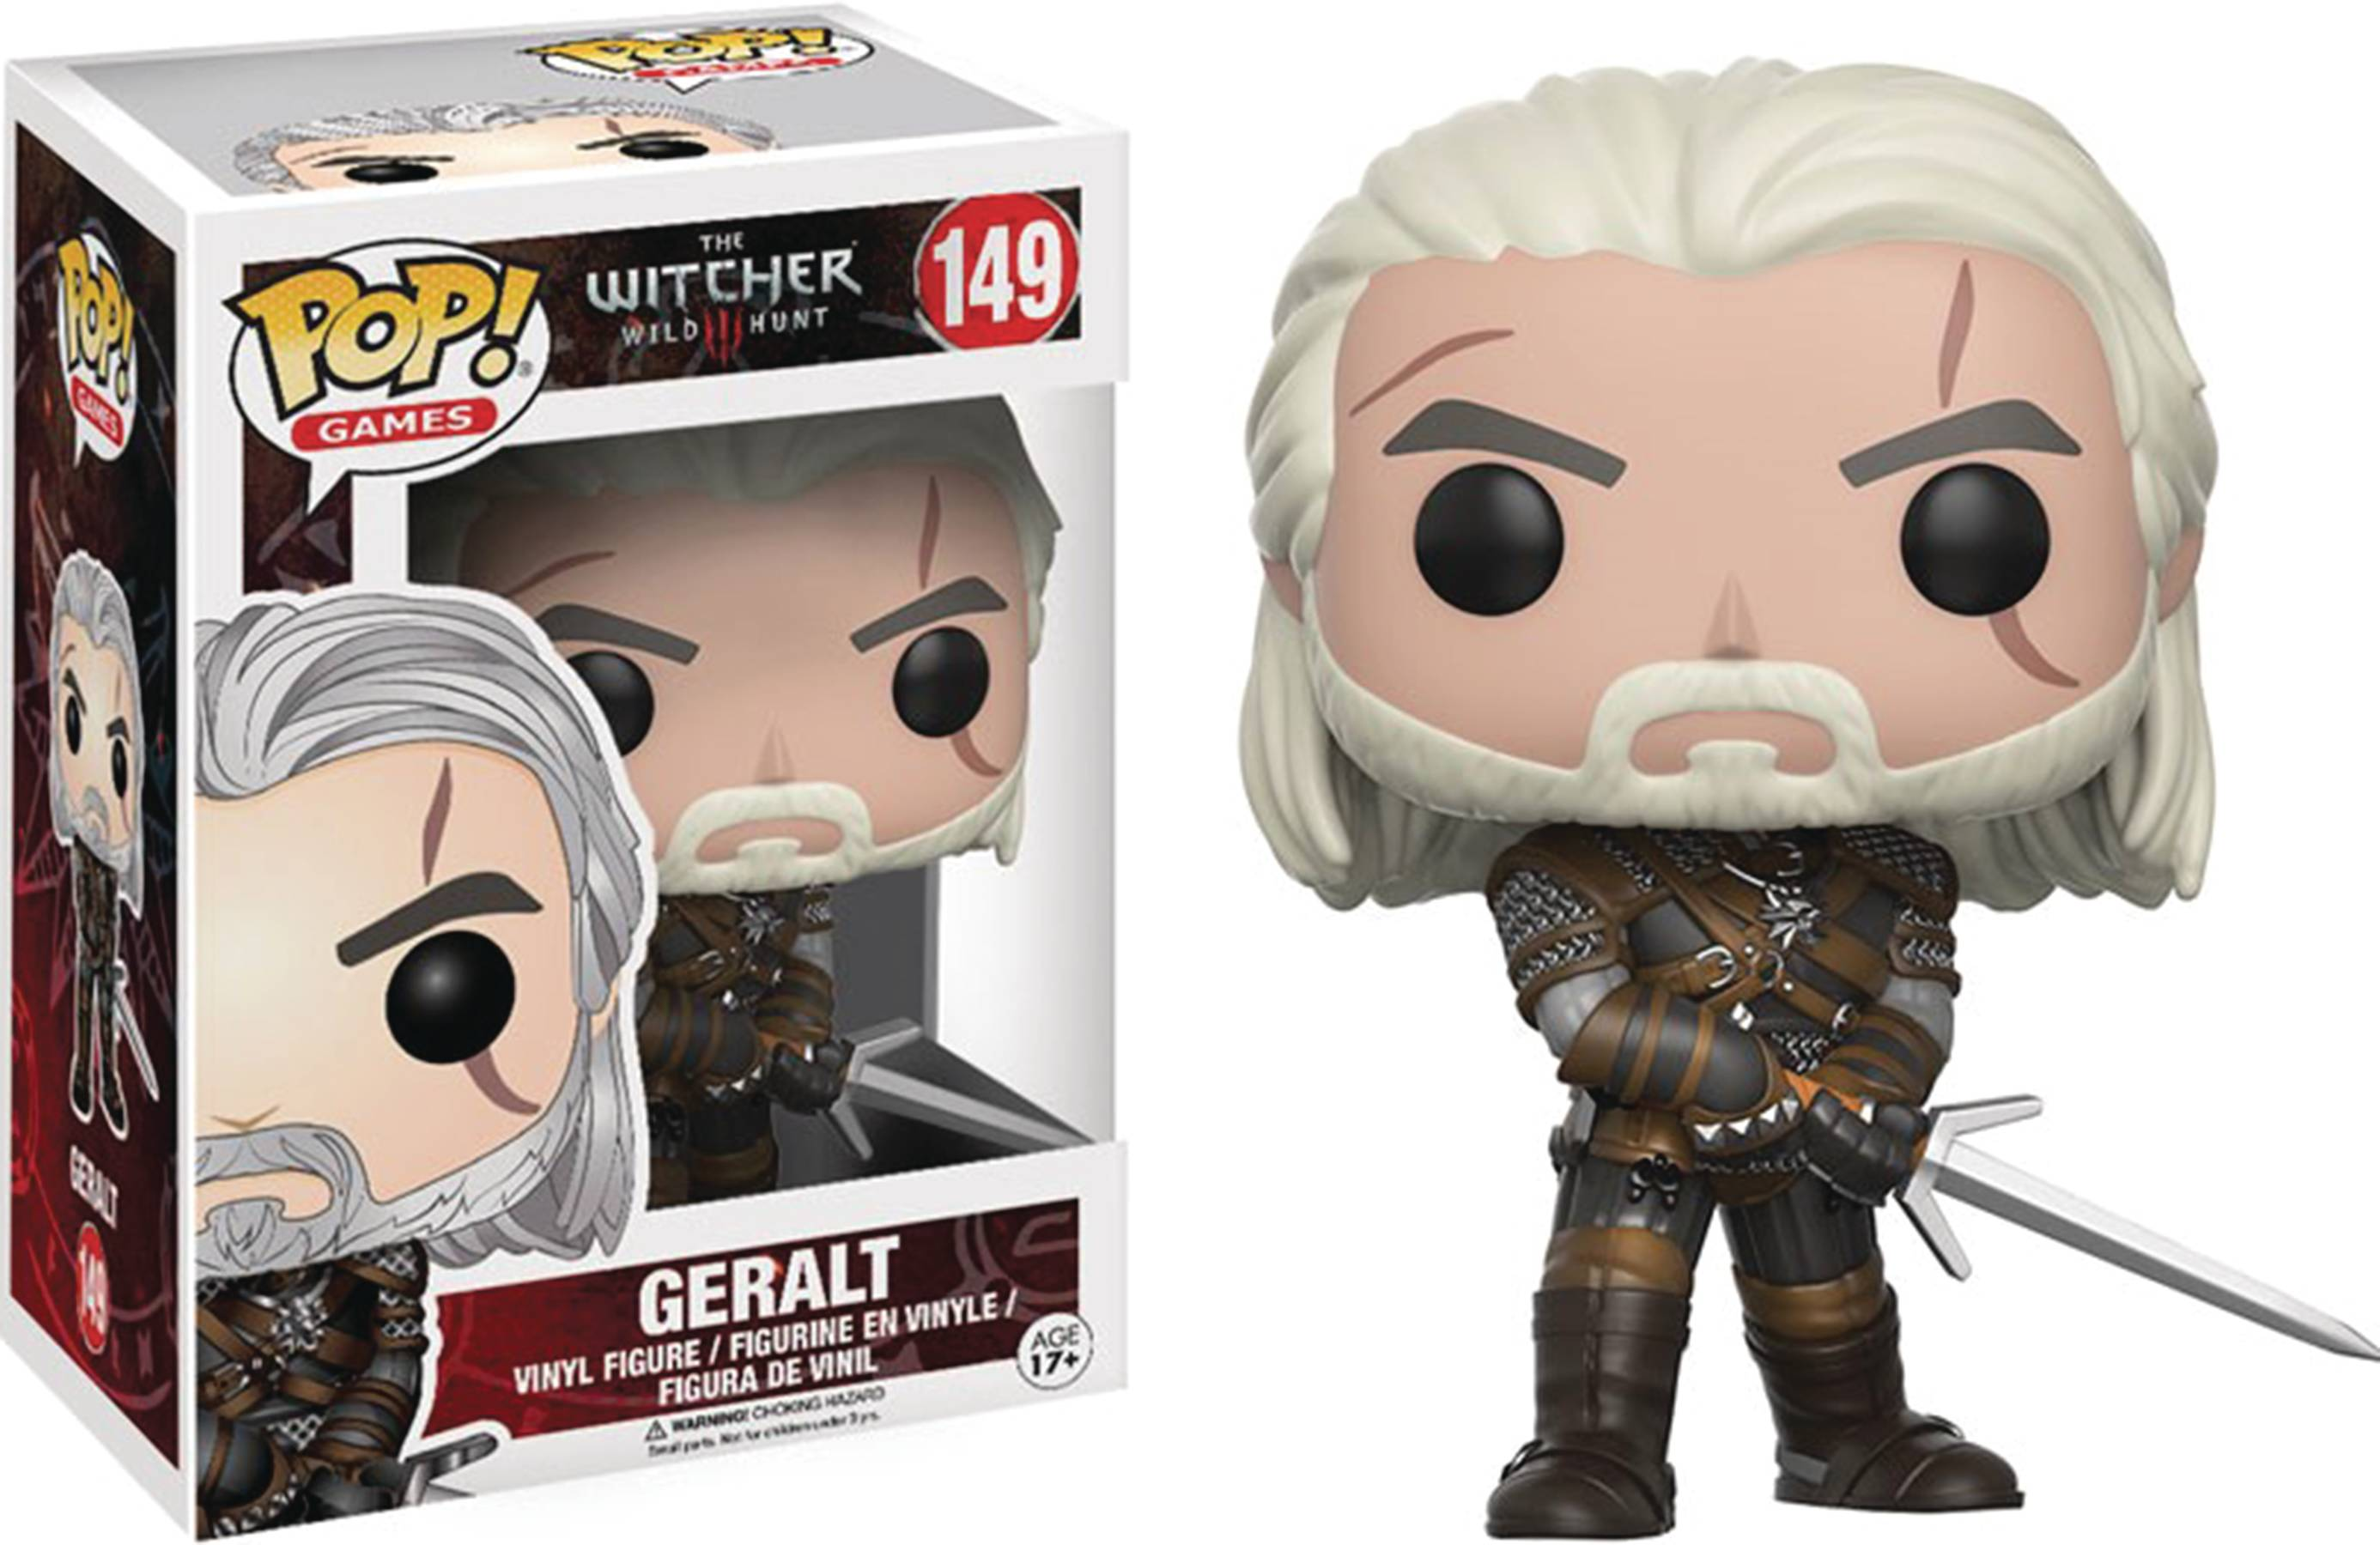 POP WITCHER GERALT VINYL FIG